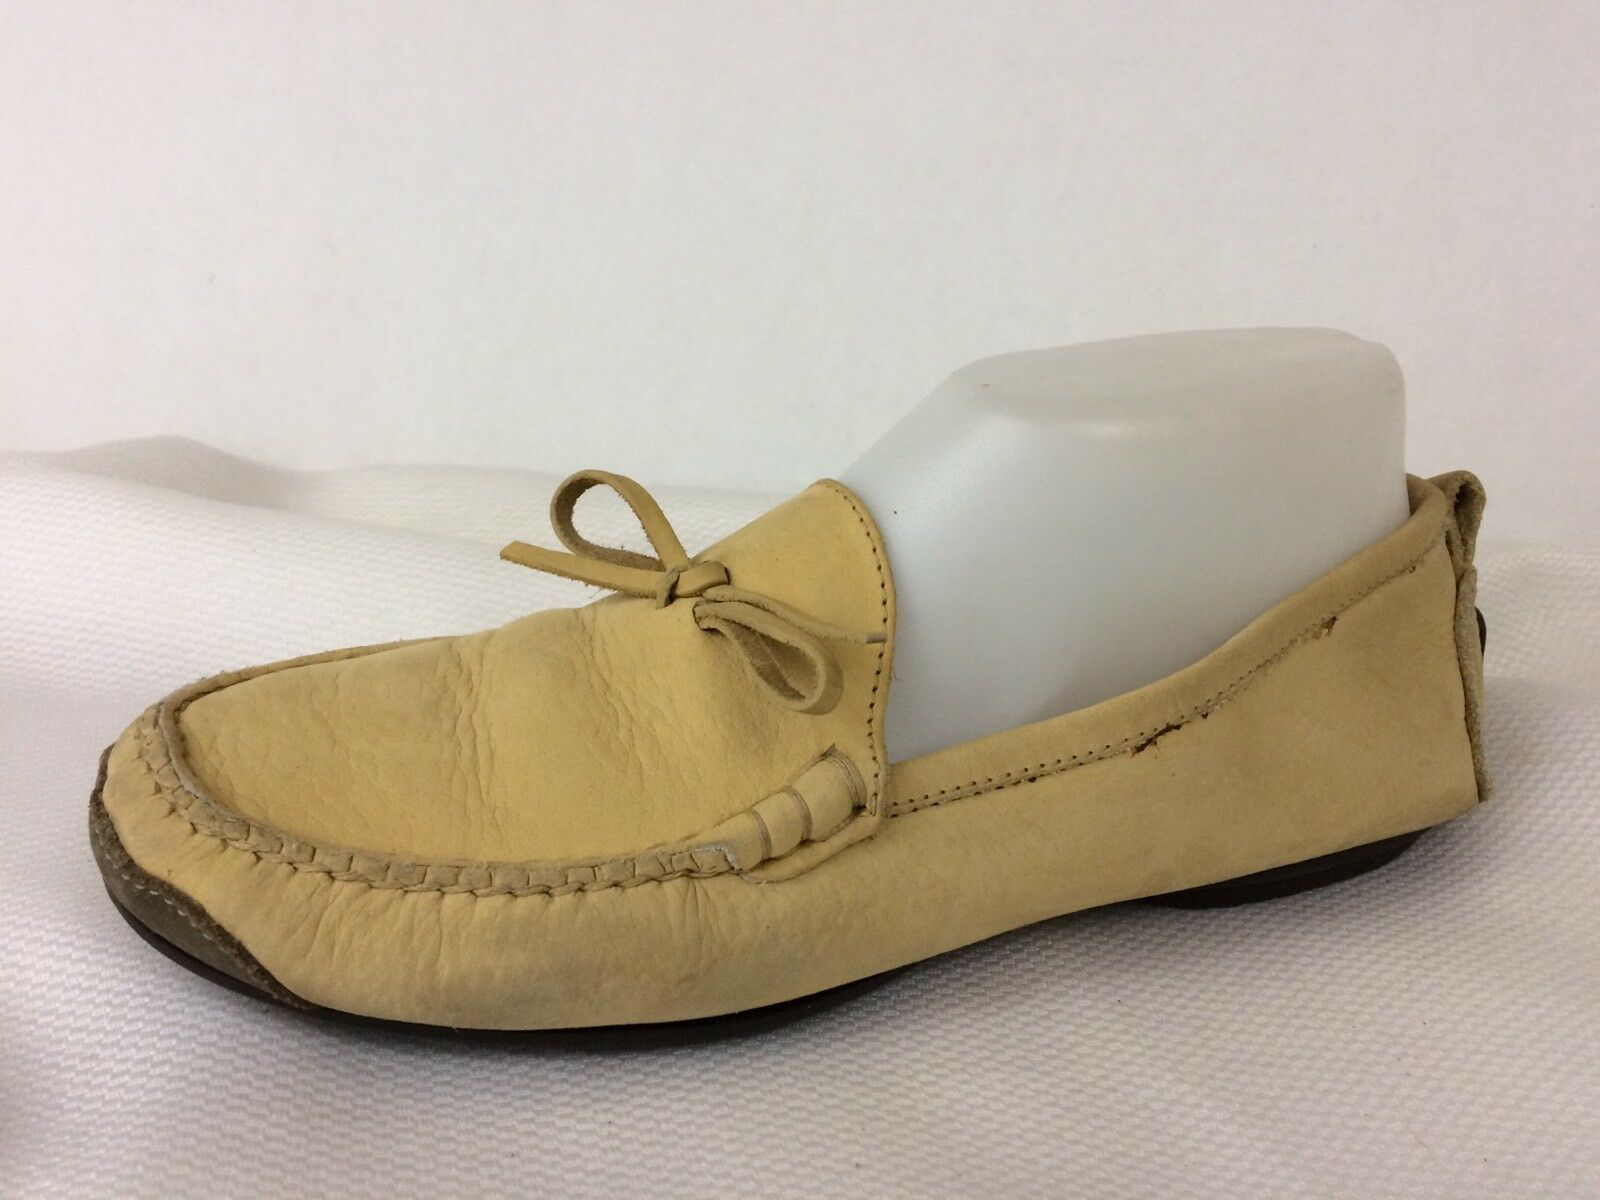 Cole Haan Country Women 8 M Beige Yellow Bow Slip On Loafer Moc Toe shoes Leather